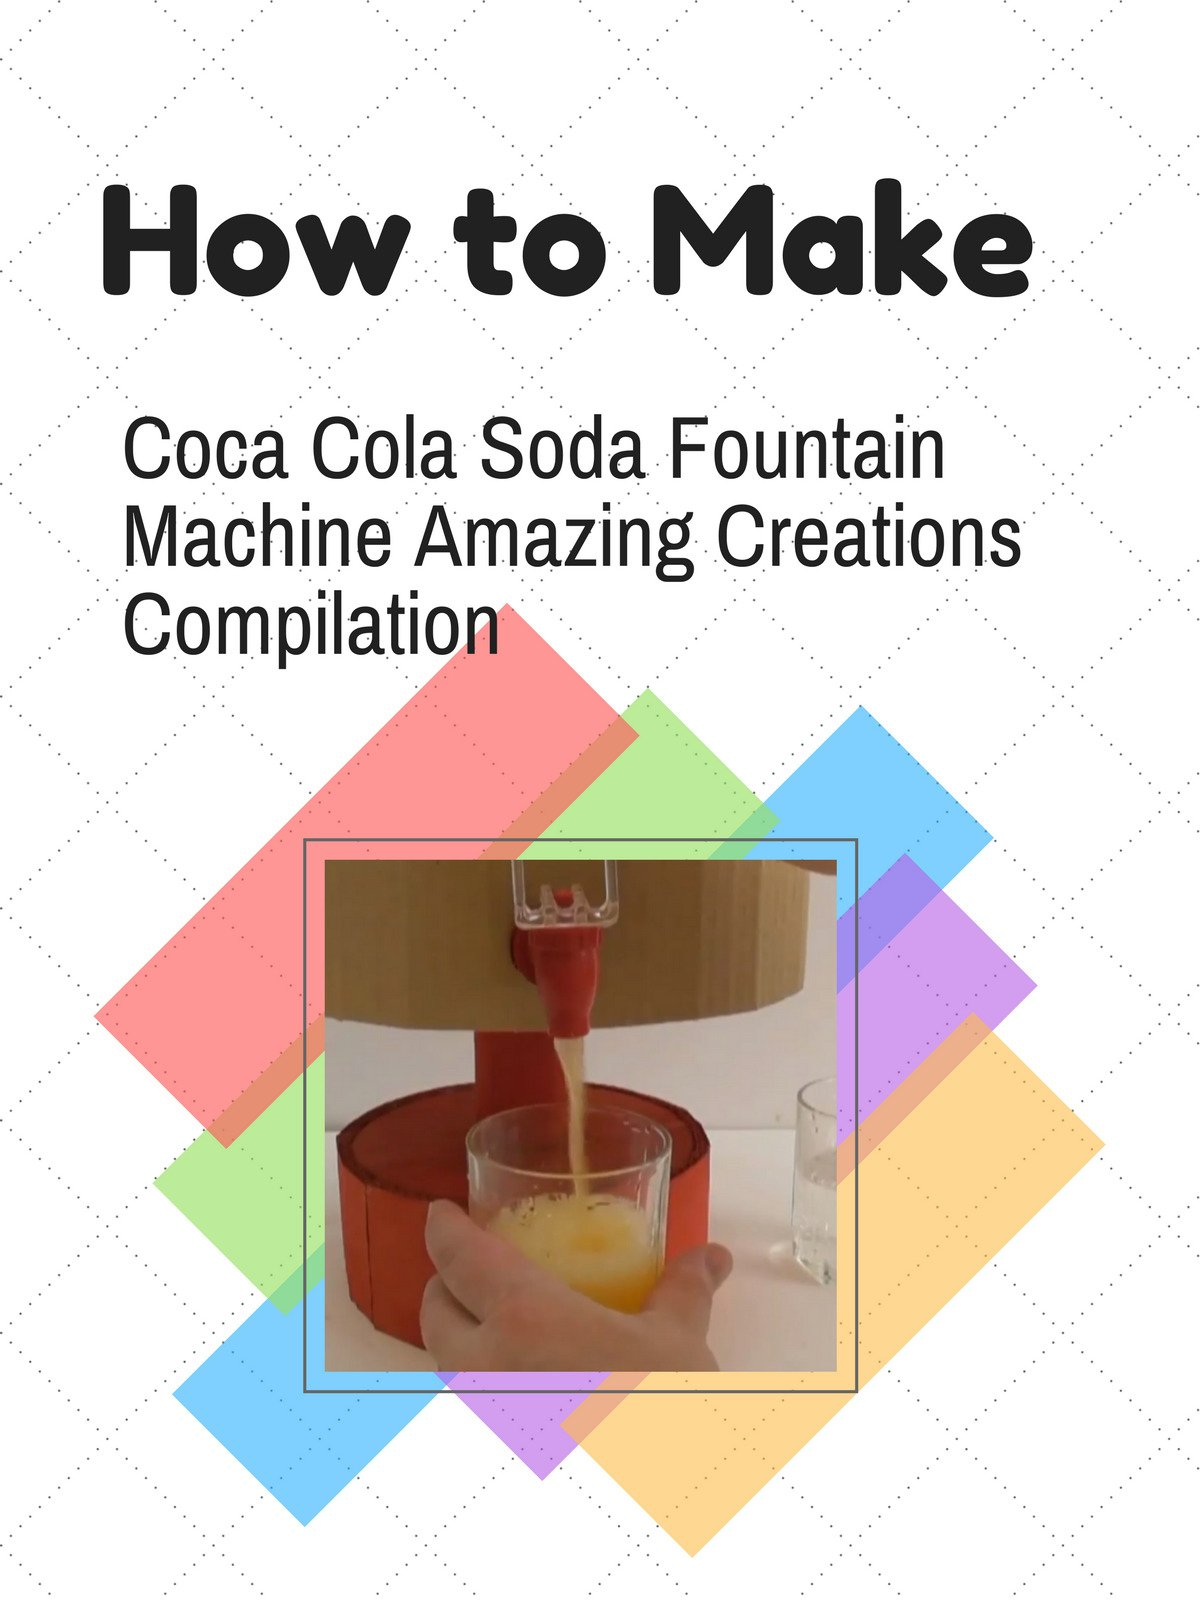 How to Make Coca Cola Soda Fountain Machine Amazing Creations Compilation